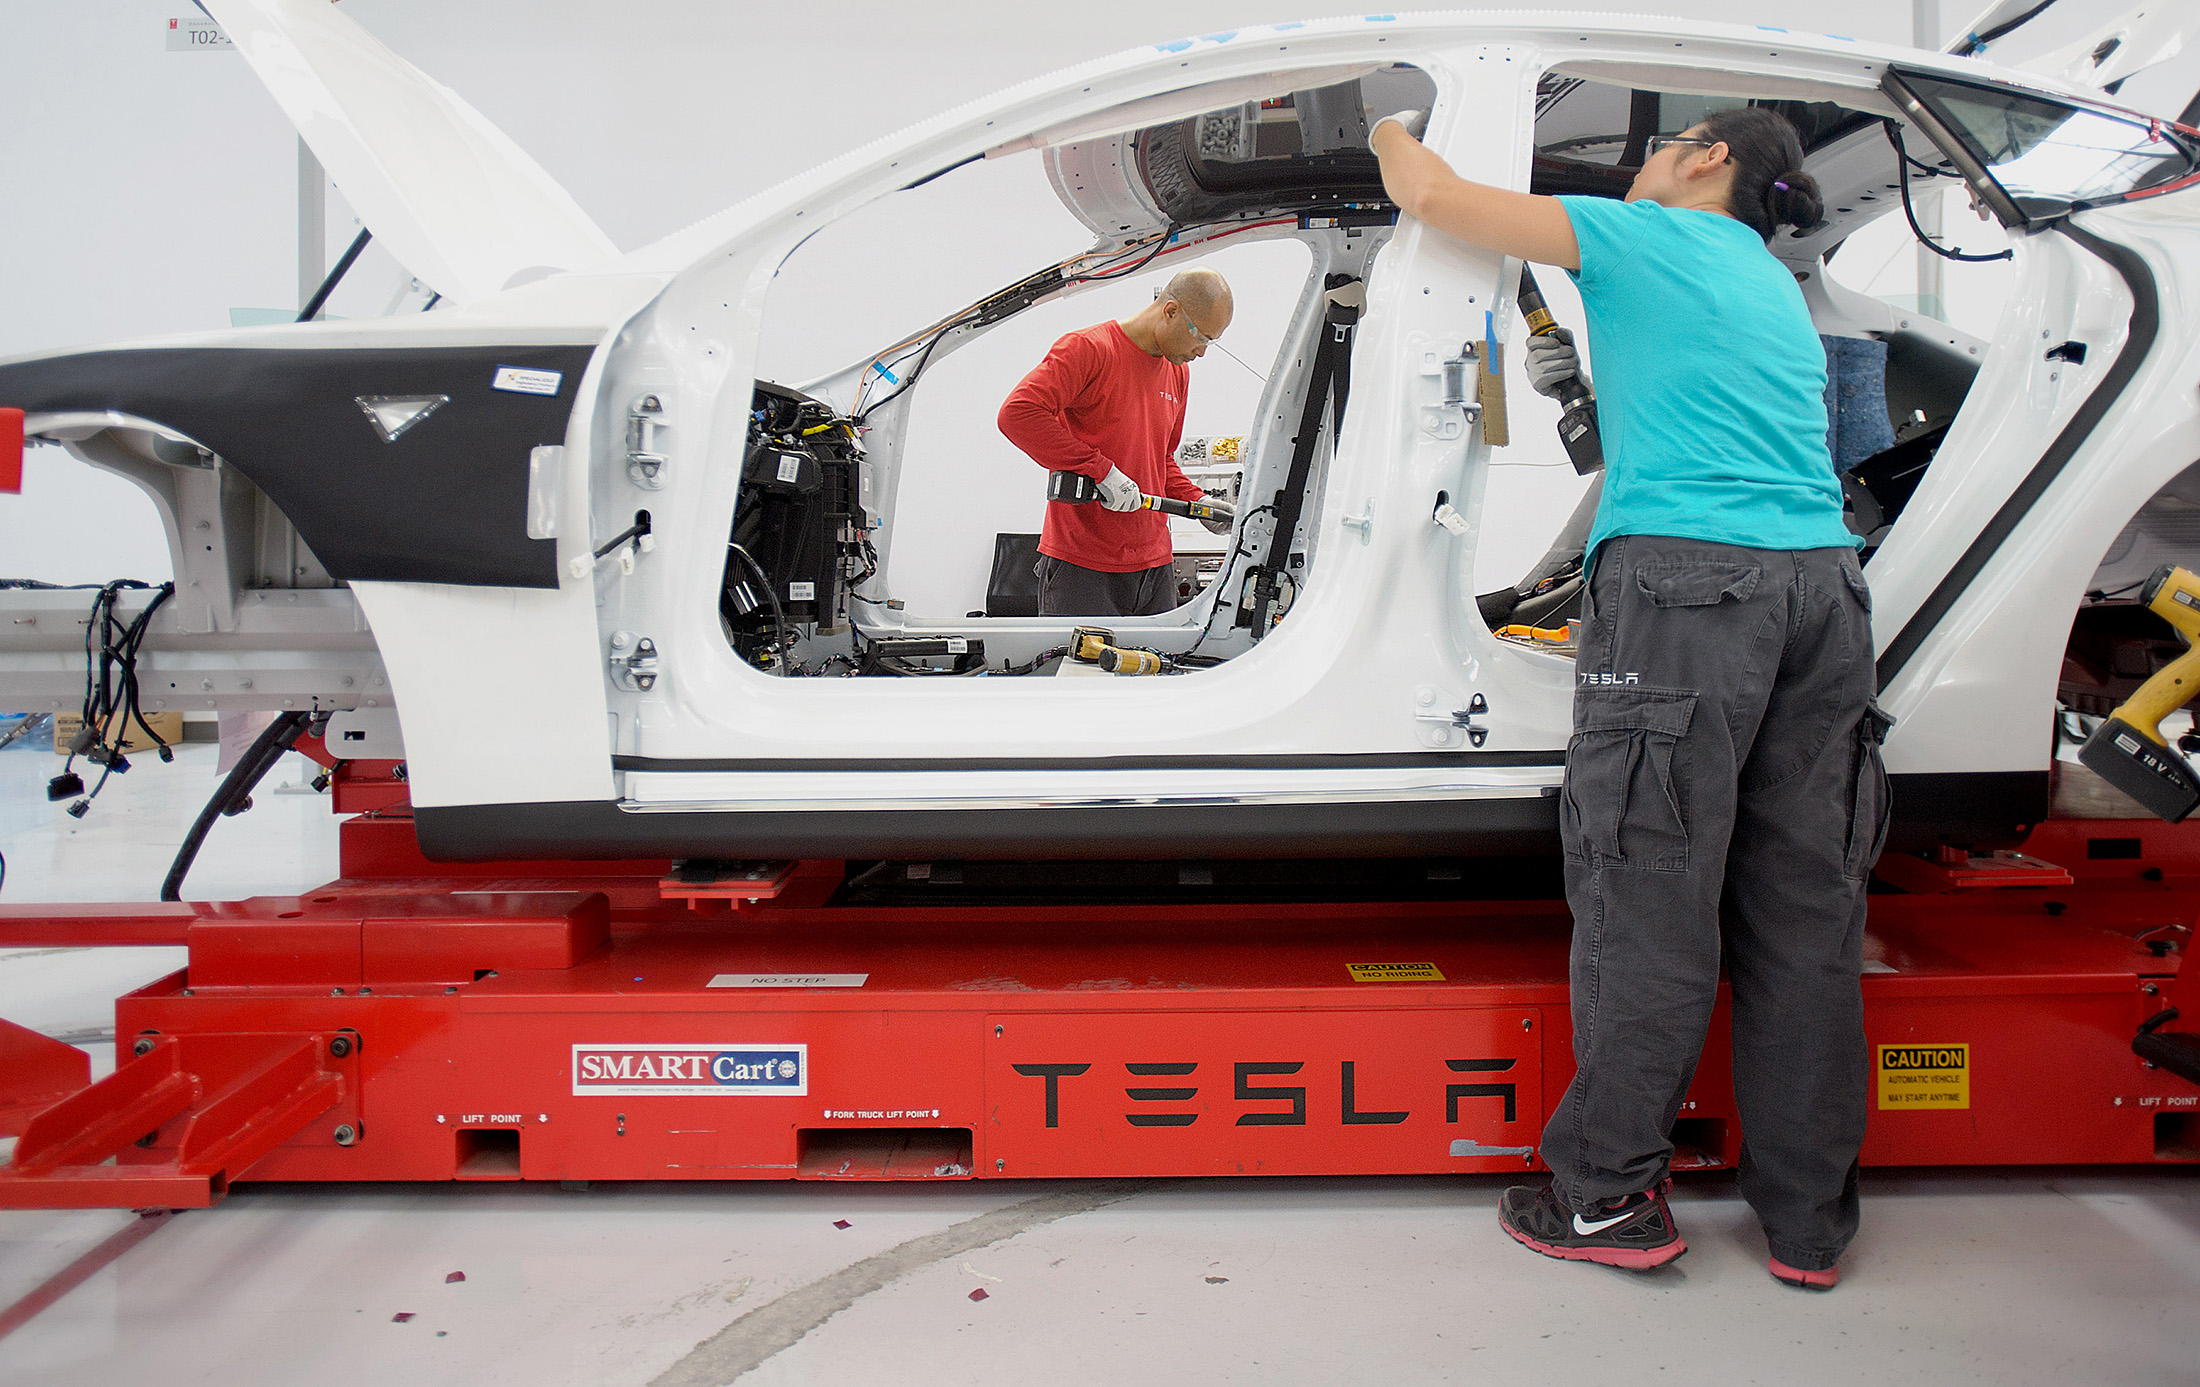 Tesla Workers Union Push Gets Uaw Support At California Plant Bloomberg